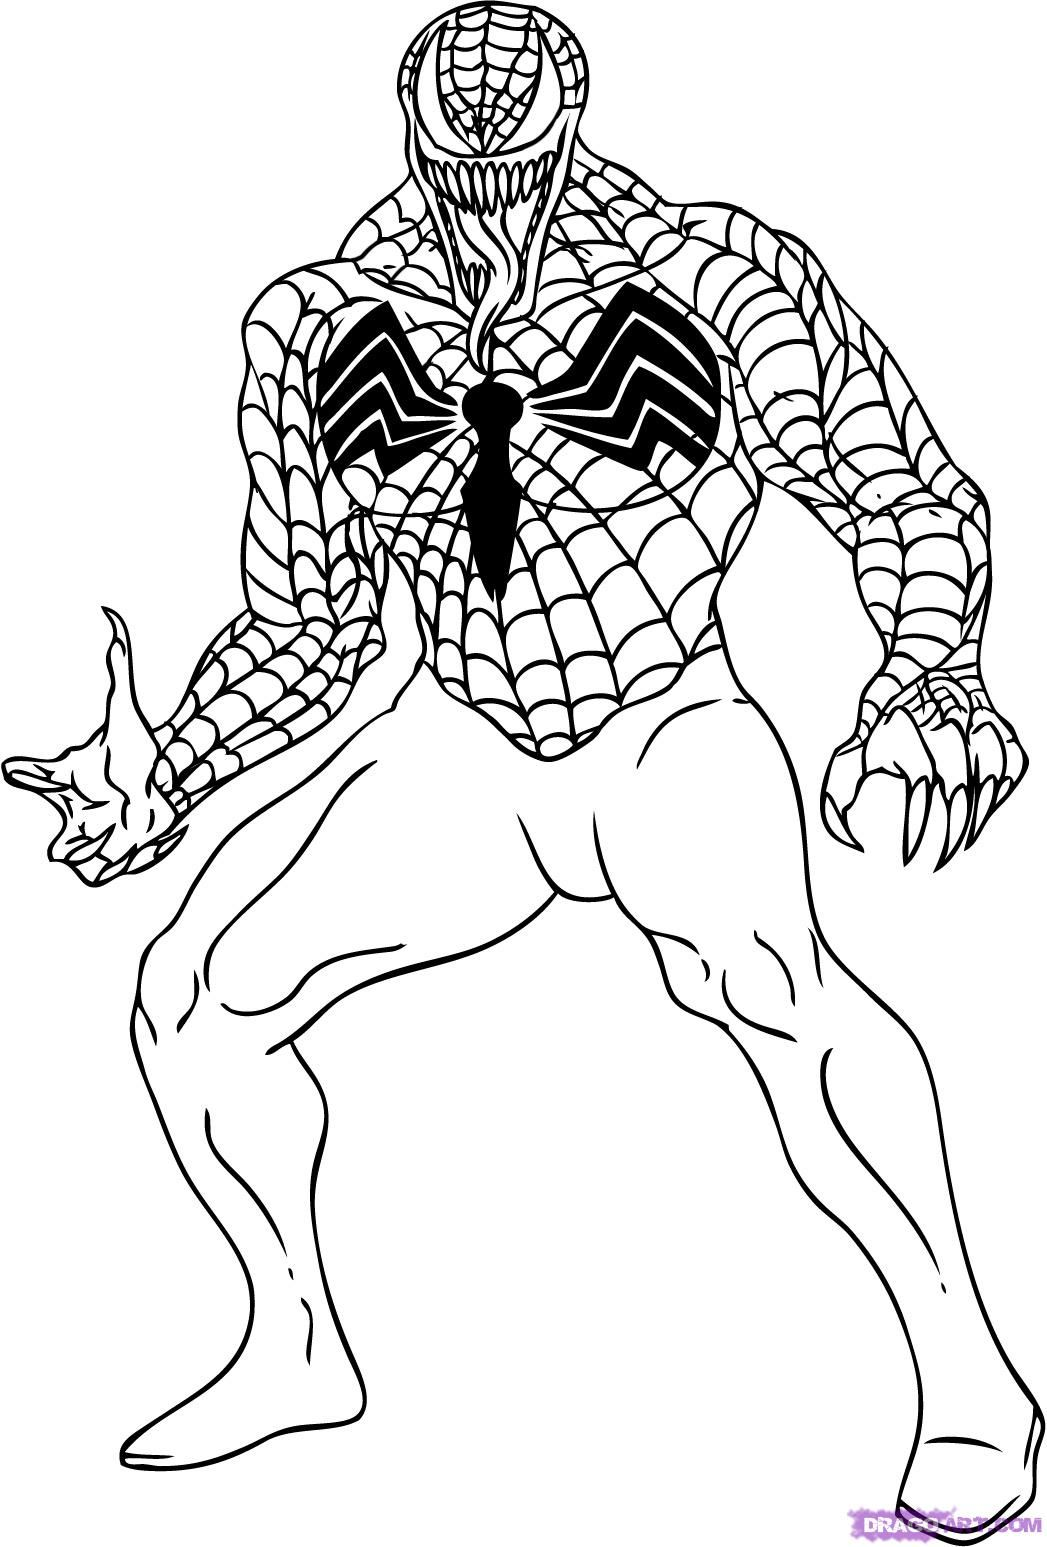 Venom Coloring Pages Spiderman Coloring Avengers Coloring Pages Lego Coloring